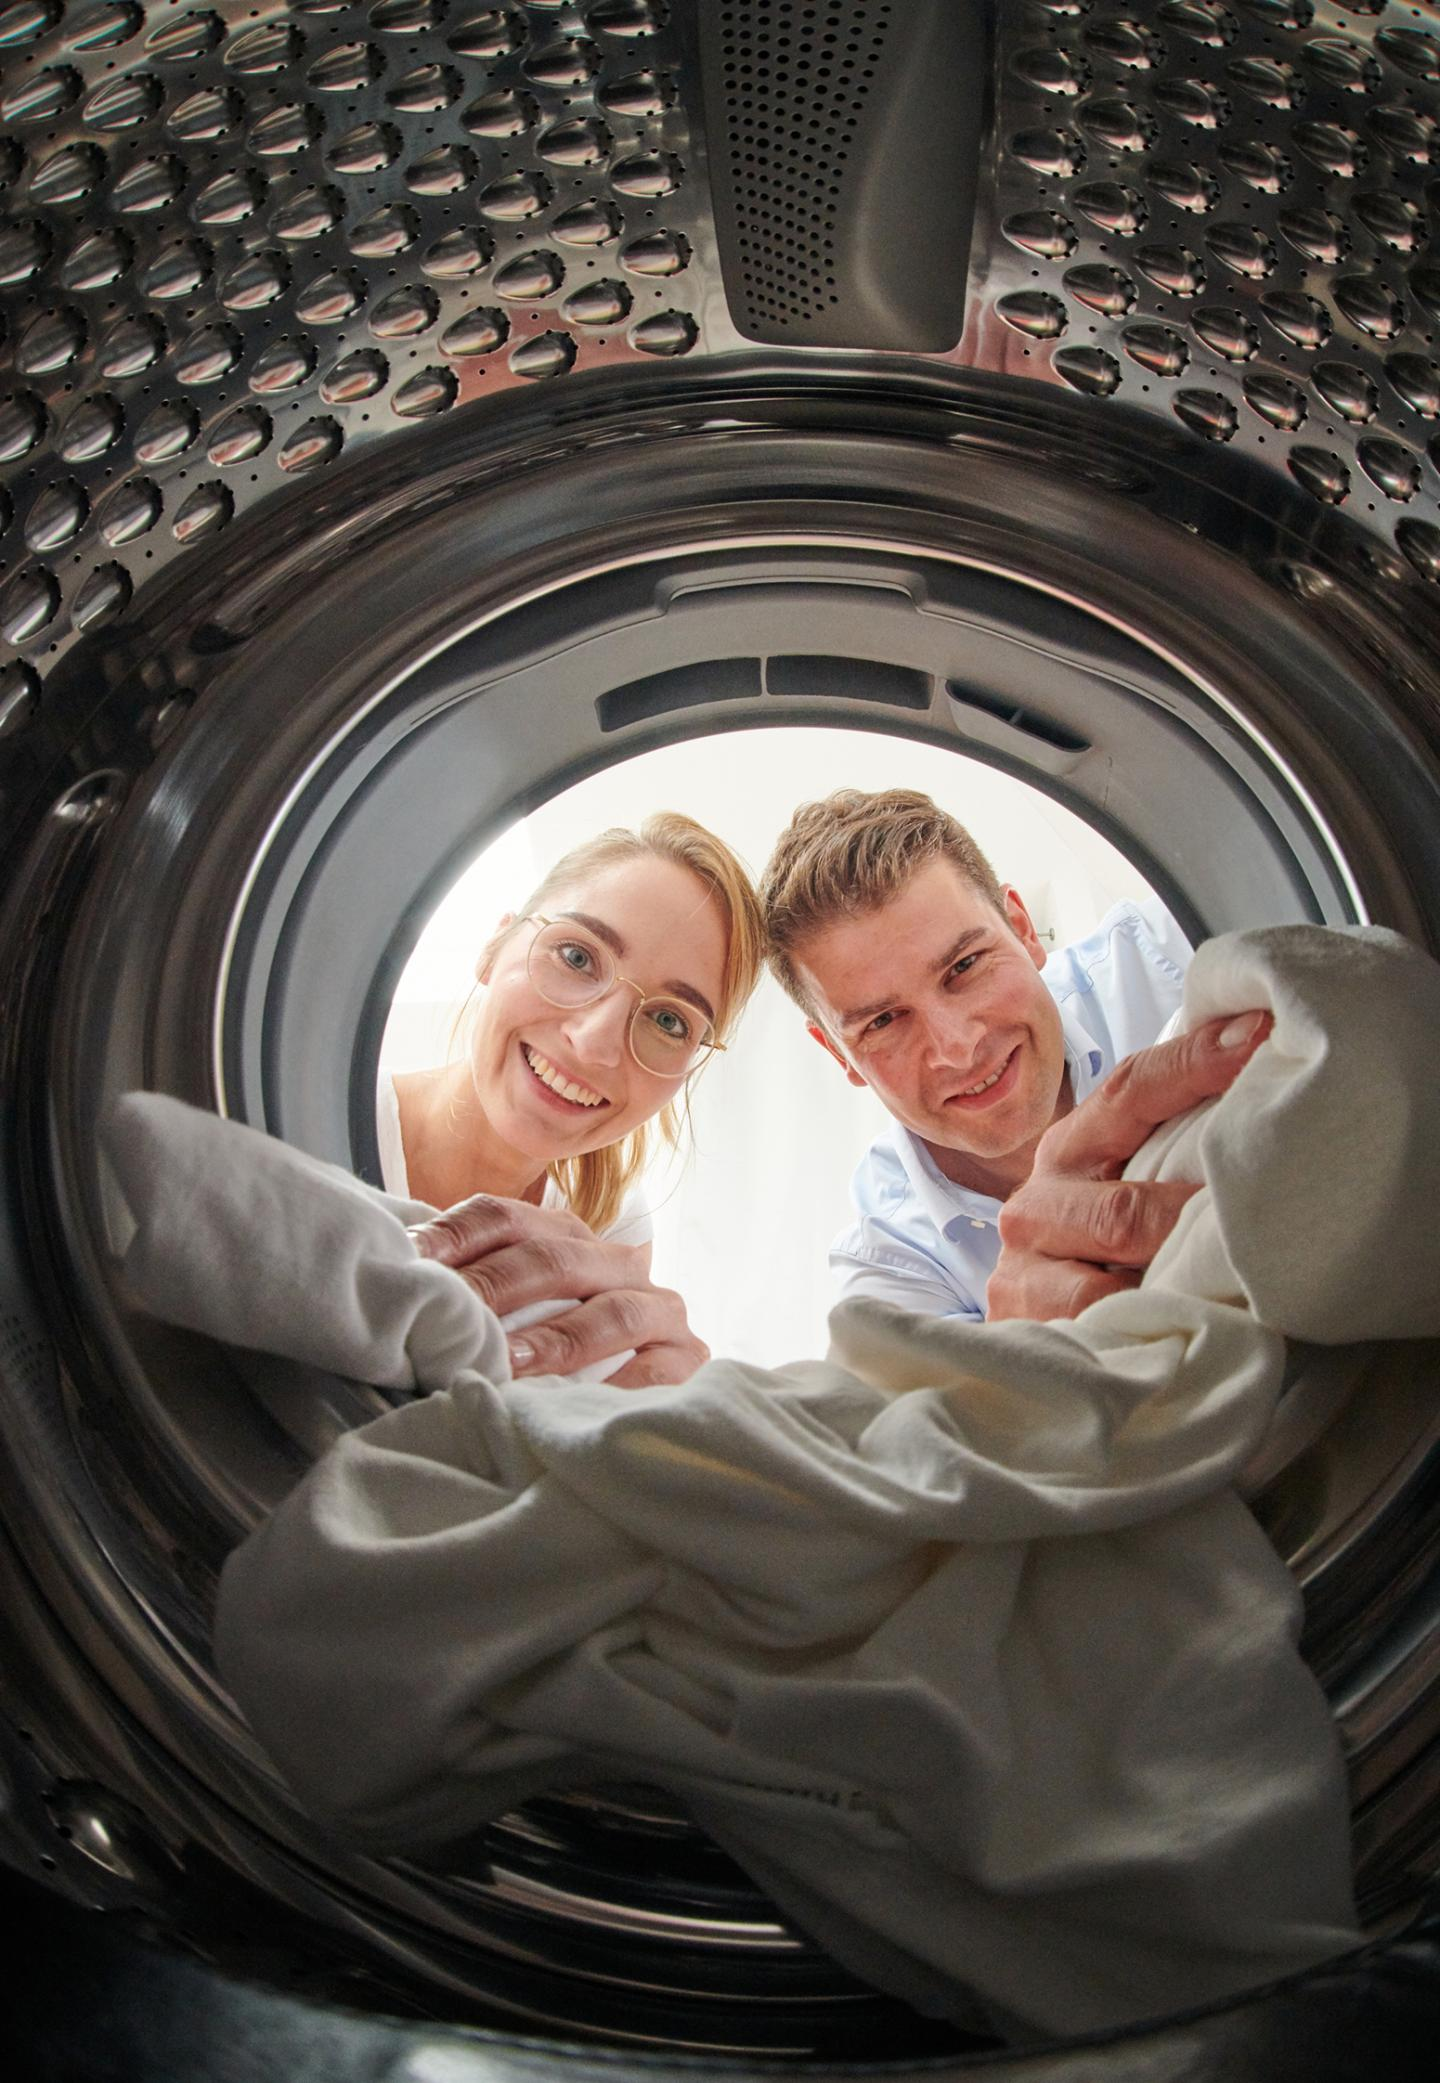 Washing Machines Can also Harbor Dangerous Bacteria